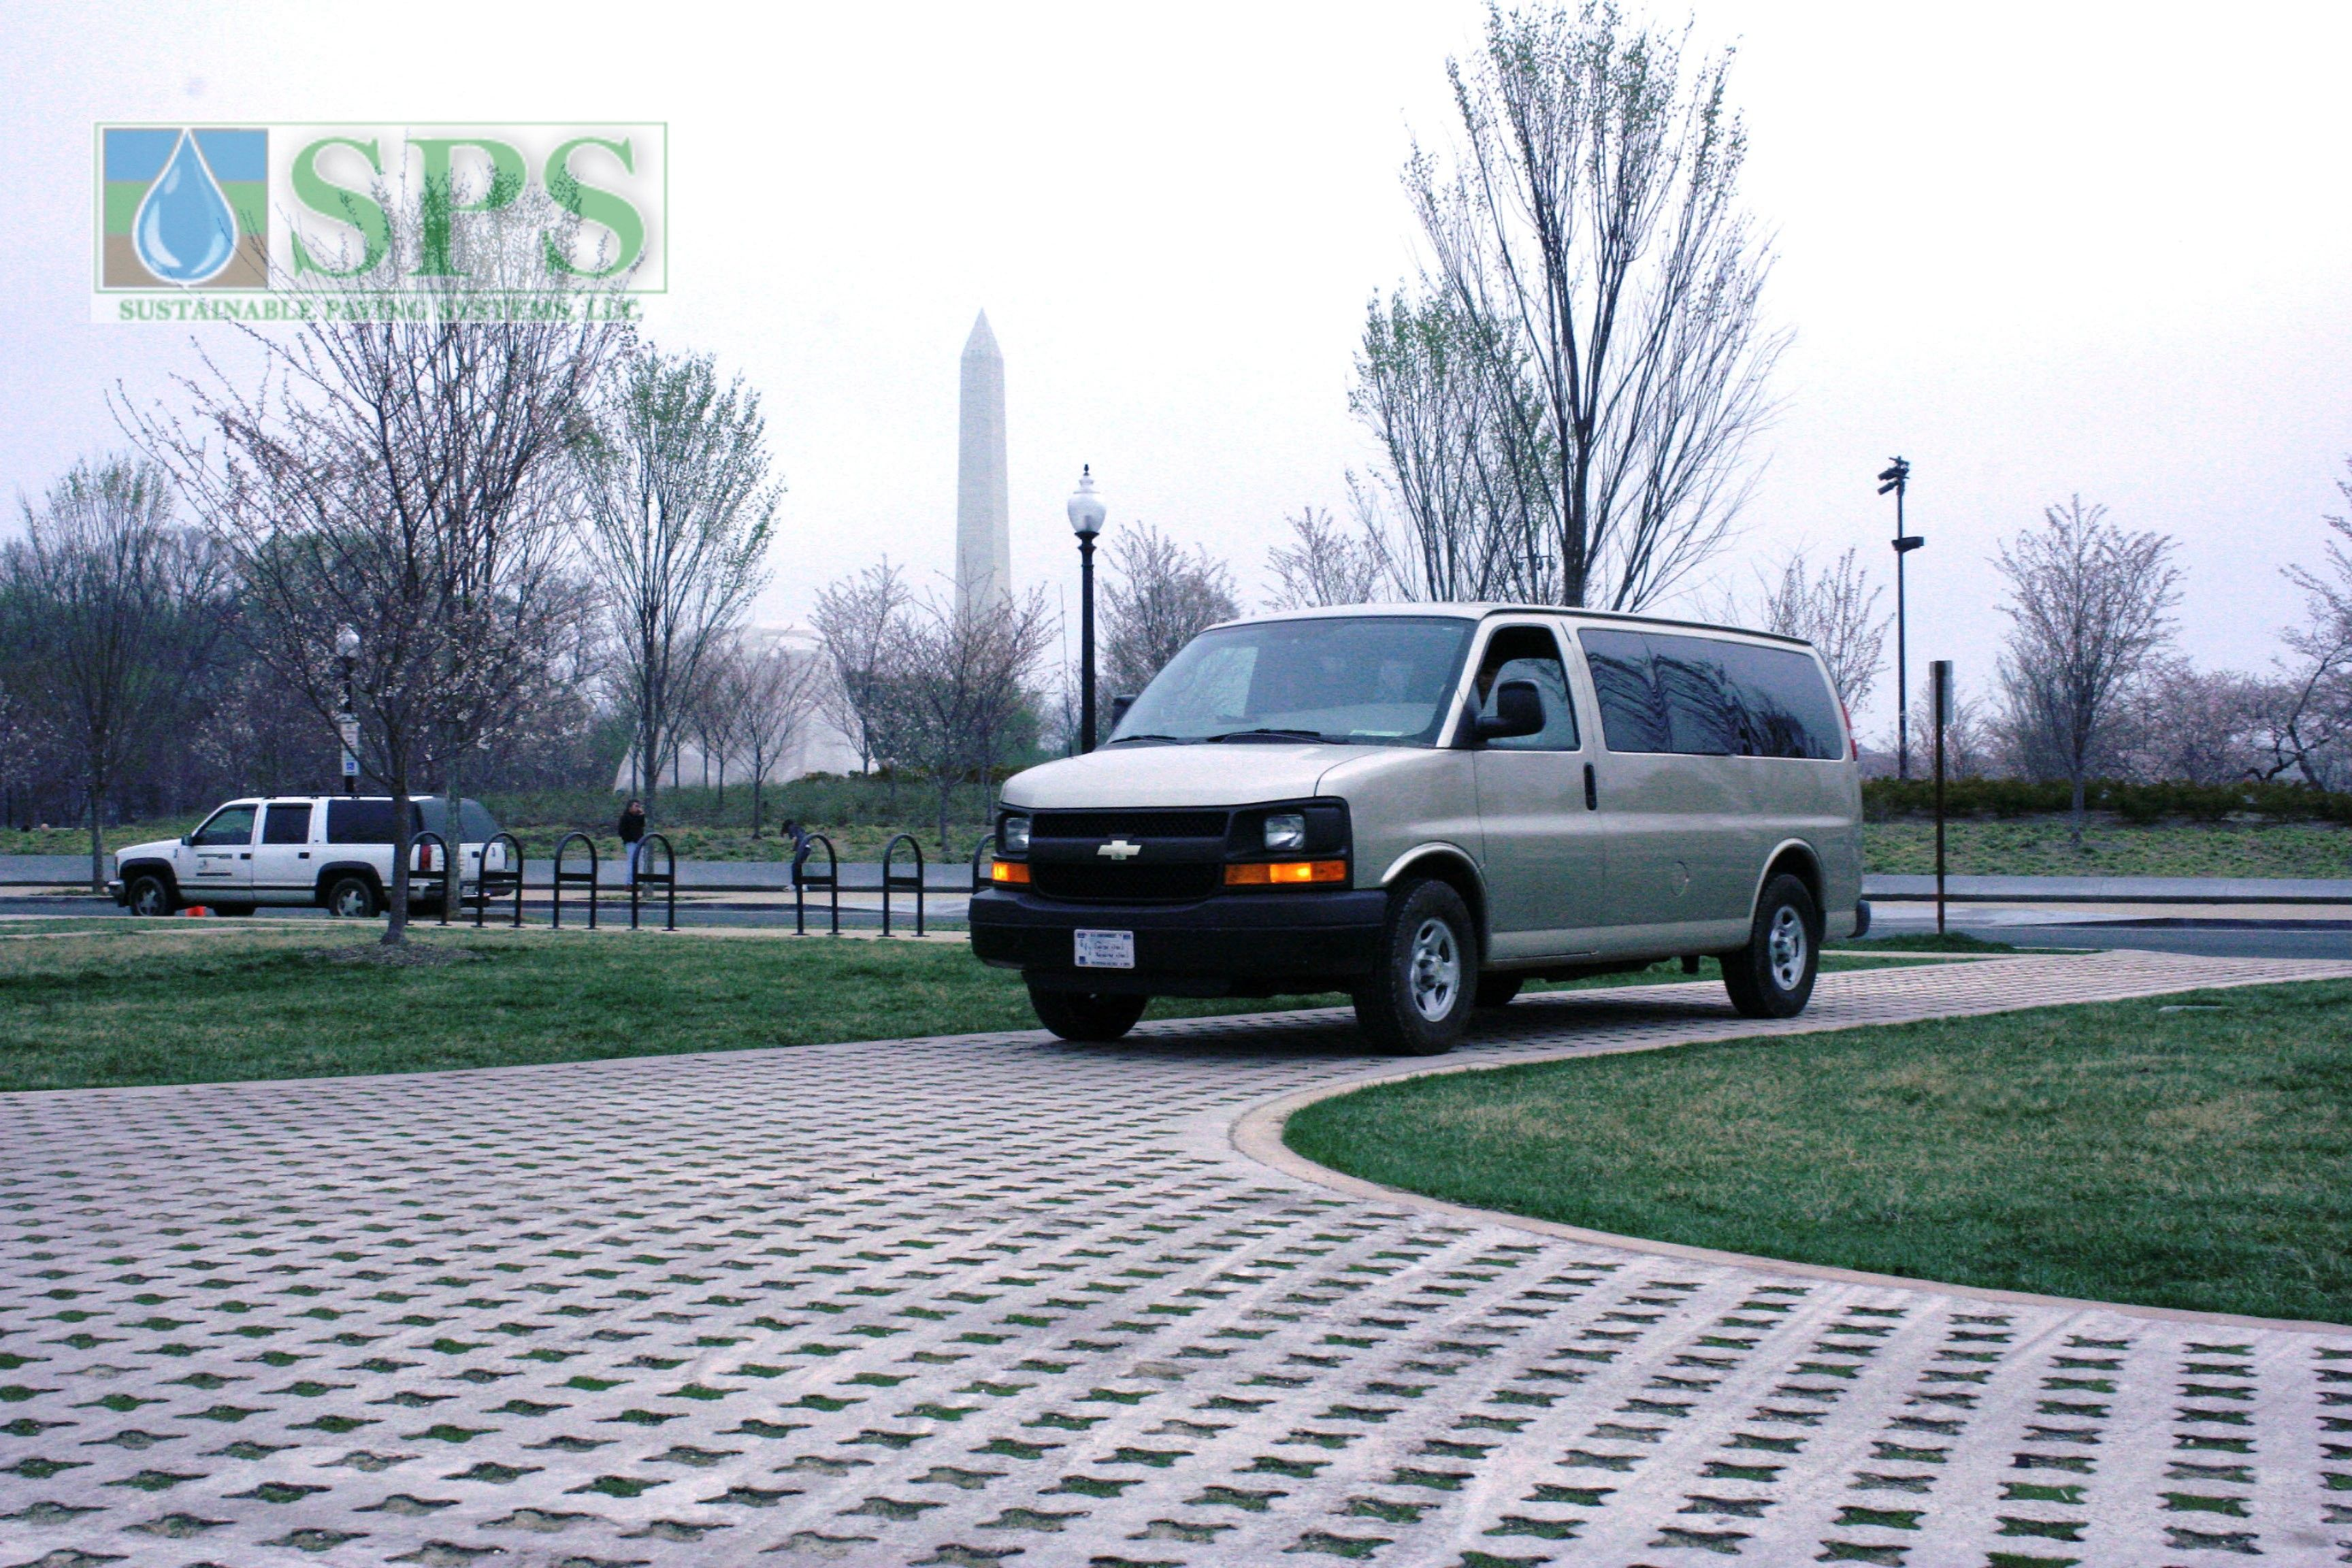 Grasscrete Partially Conceealed System At Mlk National Memorial View Of Vehicle Access_10